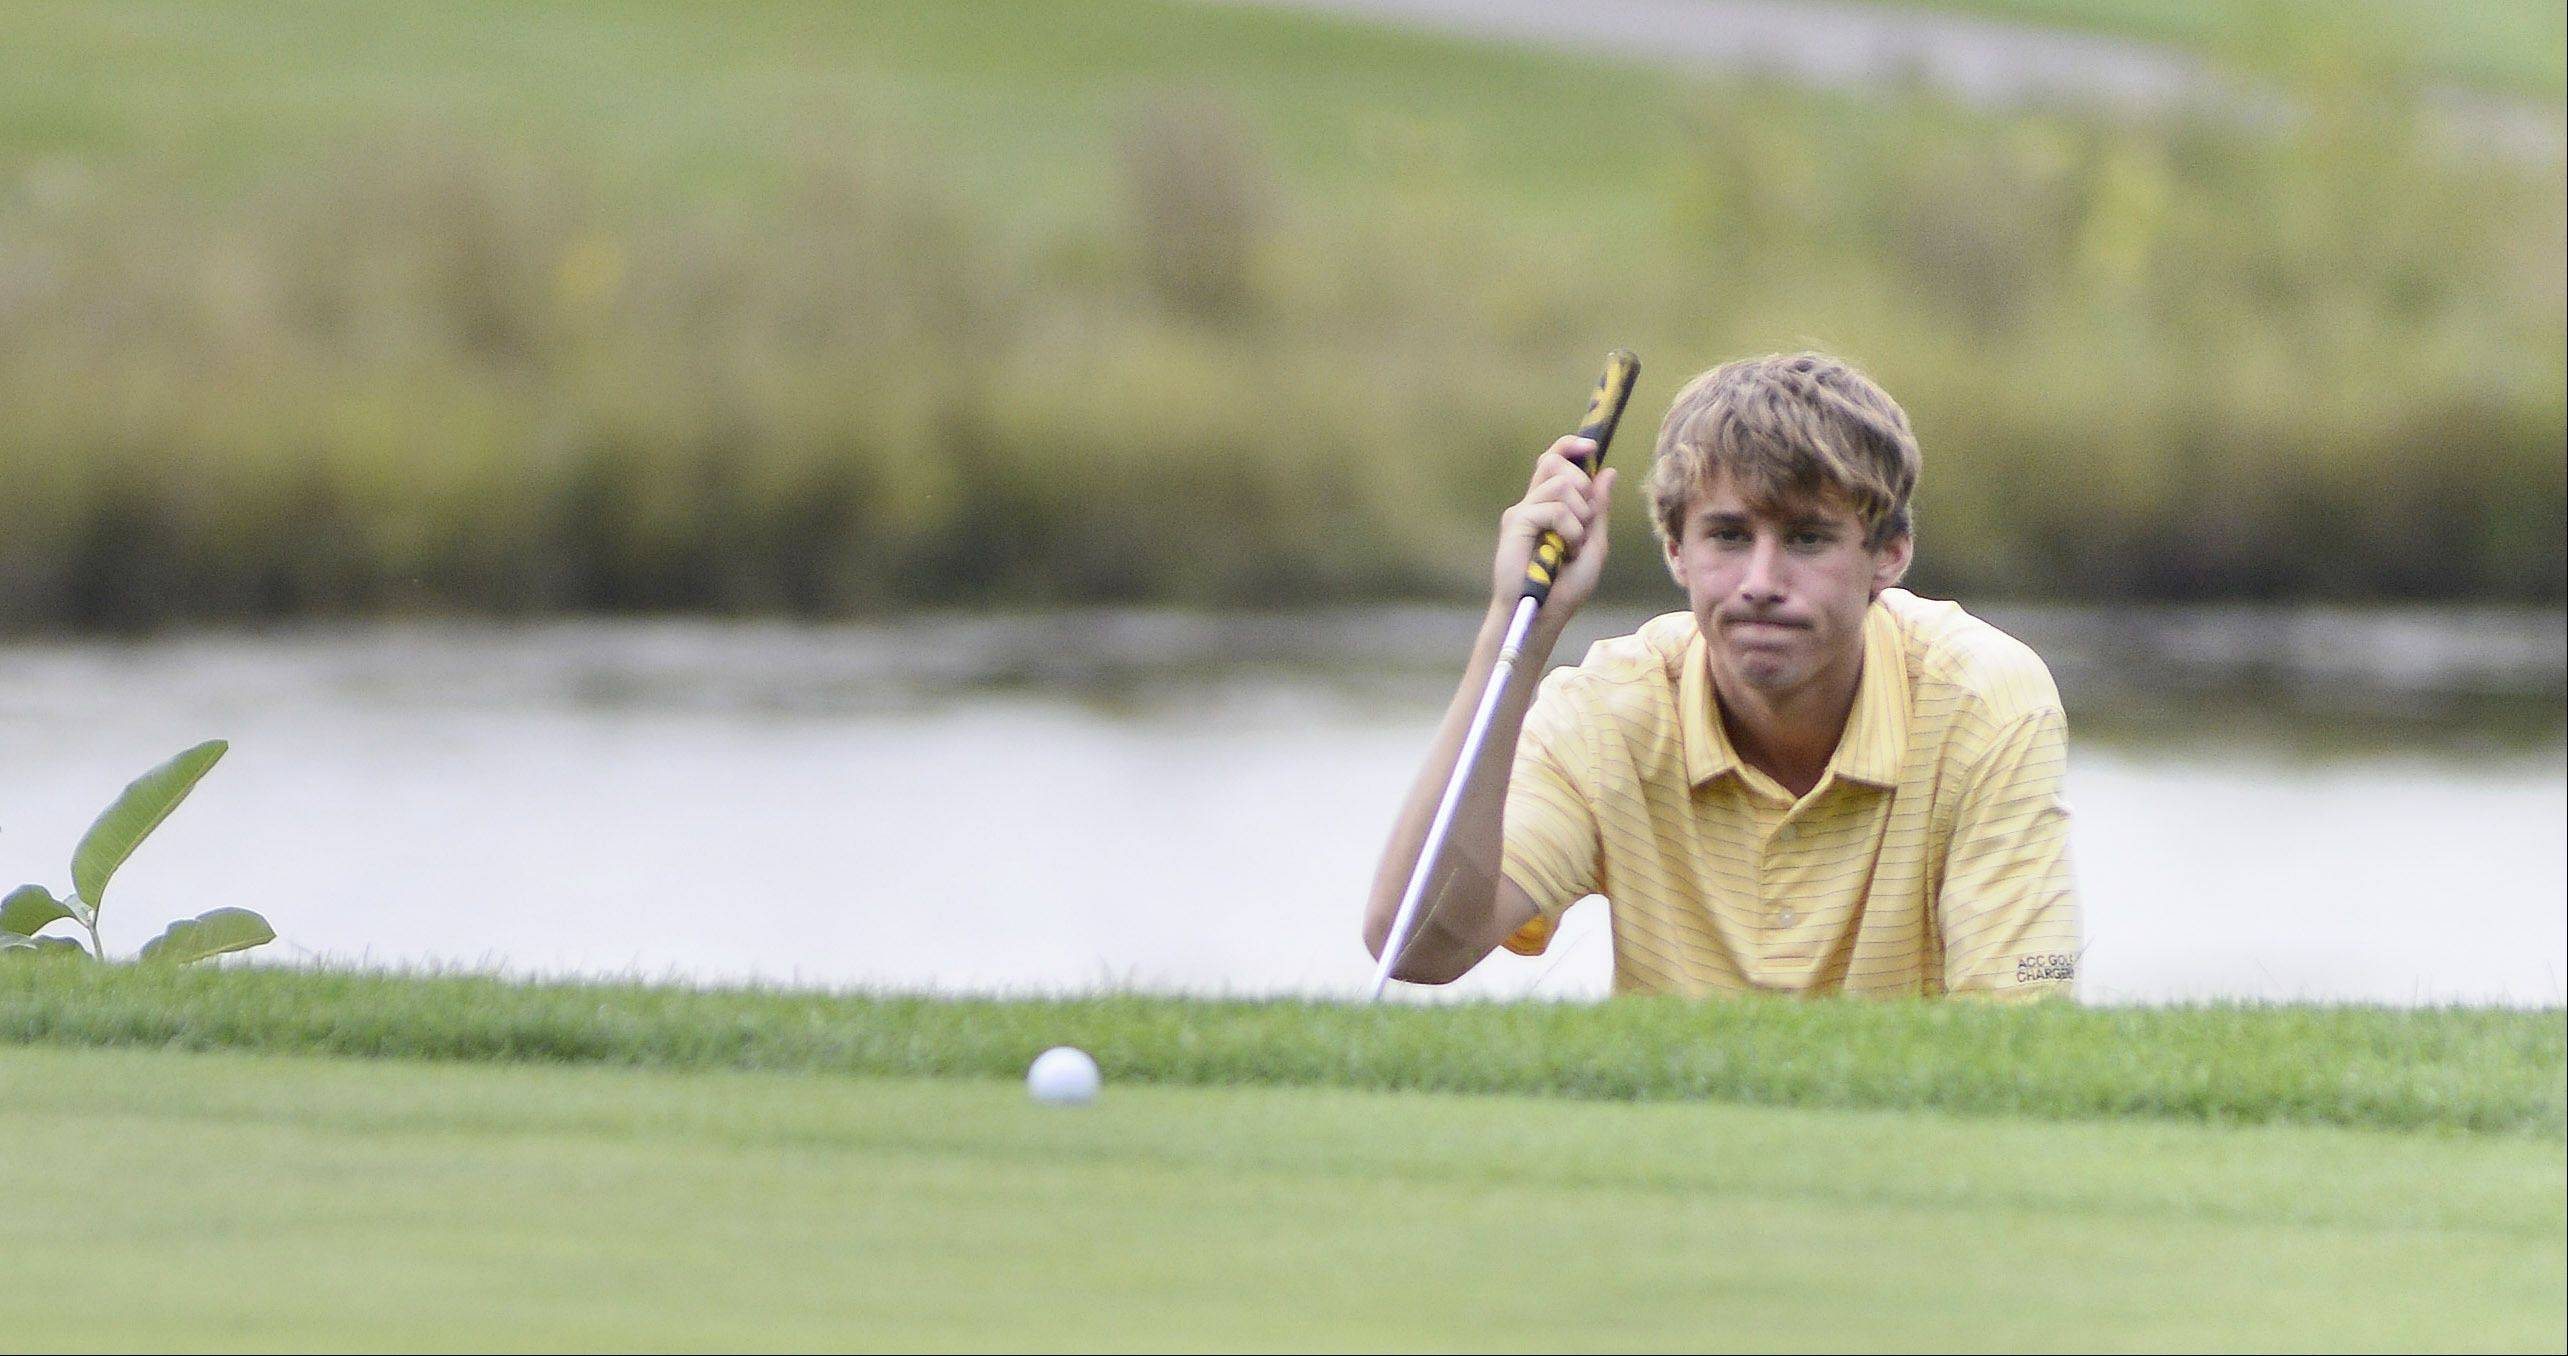 Aurora Central Catholic's Justin Prince judges his shot after hitting the ball out of the sand trap at Phillips Park Golf Course in Aurora on Wednesday.